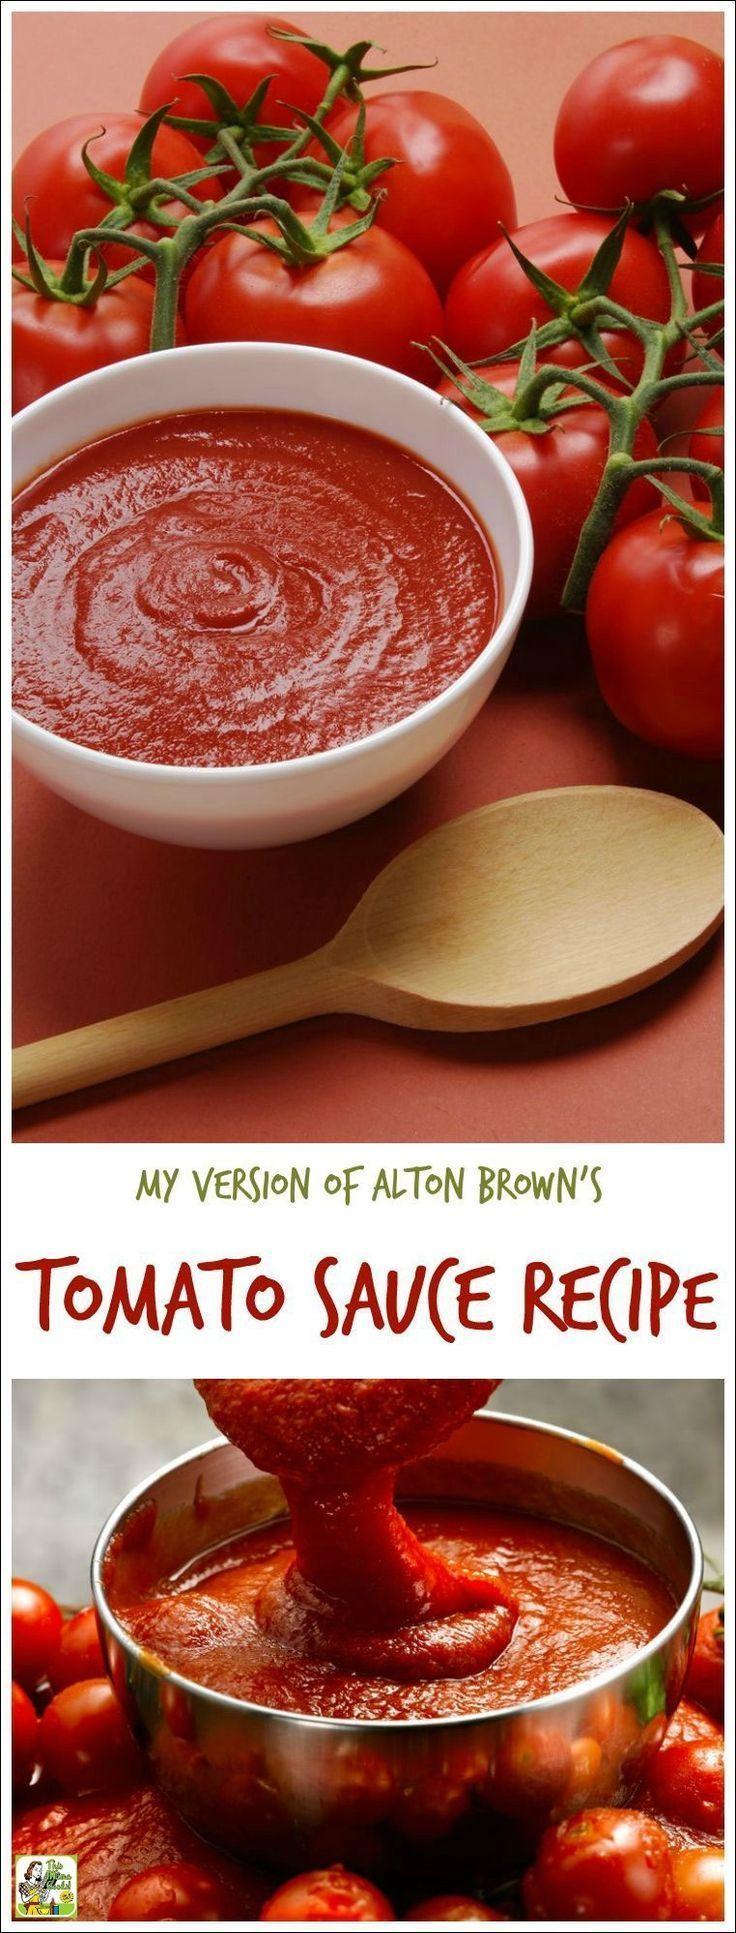 Looking for an easy homemade tomato sauce recipe? Or want to make easy fresh tomato pasta sauce from scratch? Here's my version of Alton Brown's tomato sauce recipe. Double the recipe and freeze half and you'll have spaghetti sauce in the freezer ready to